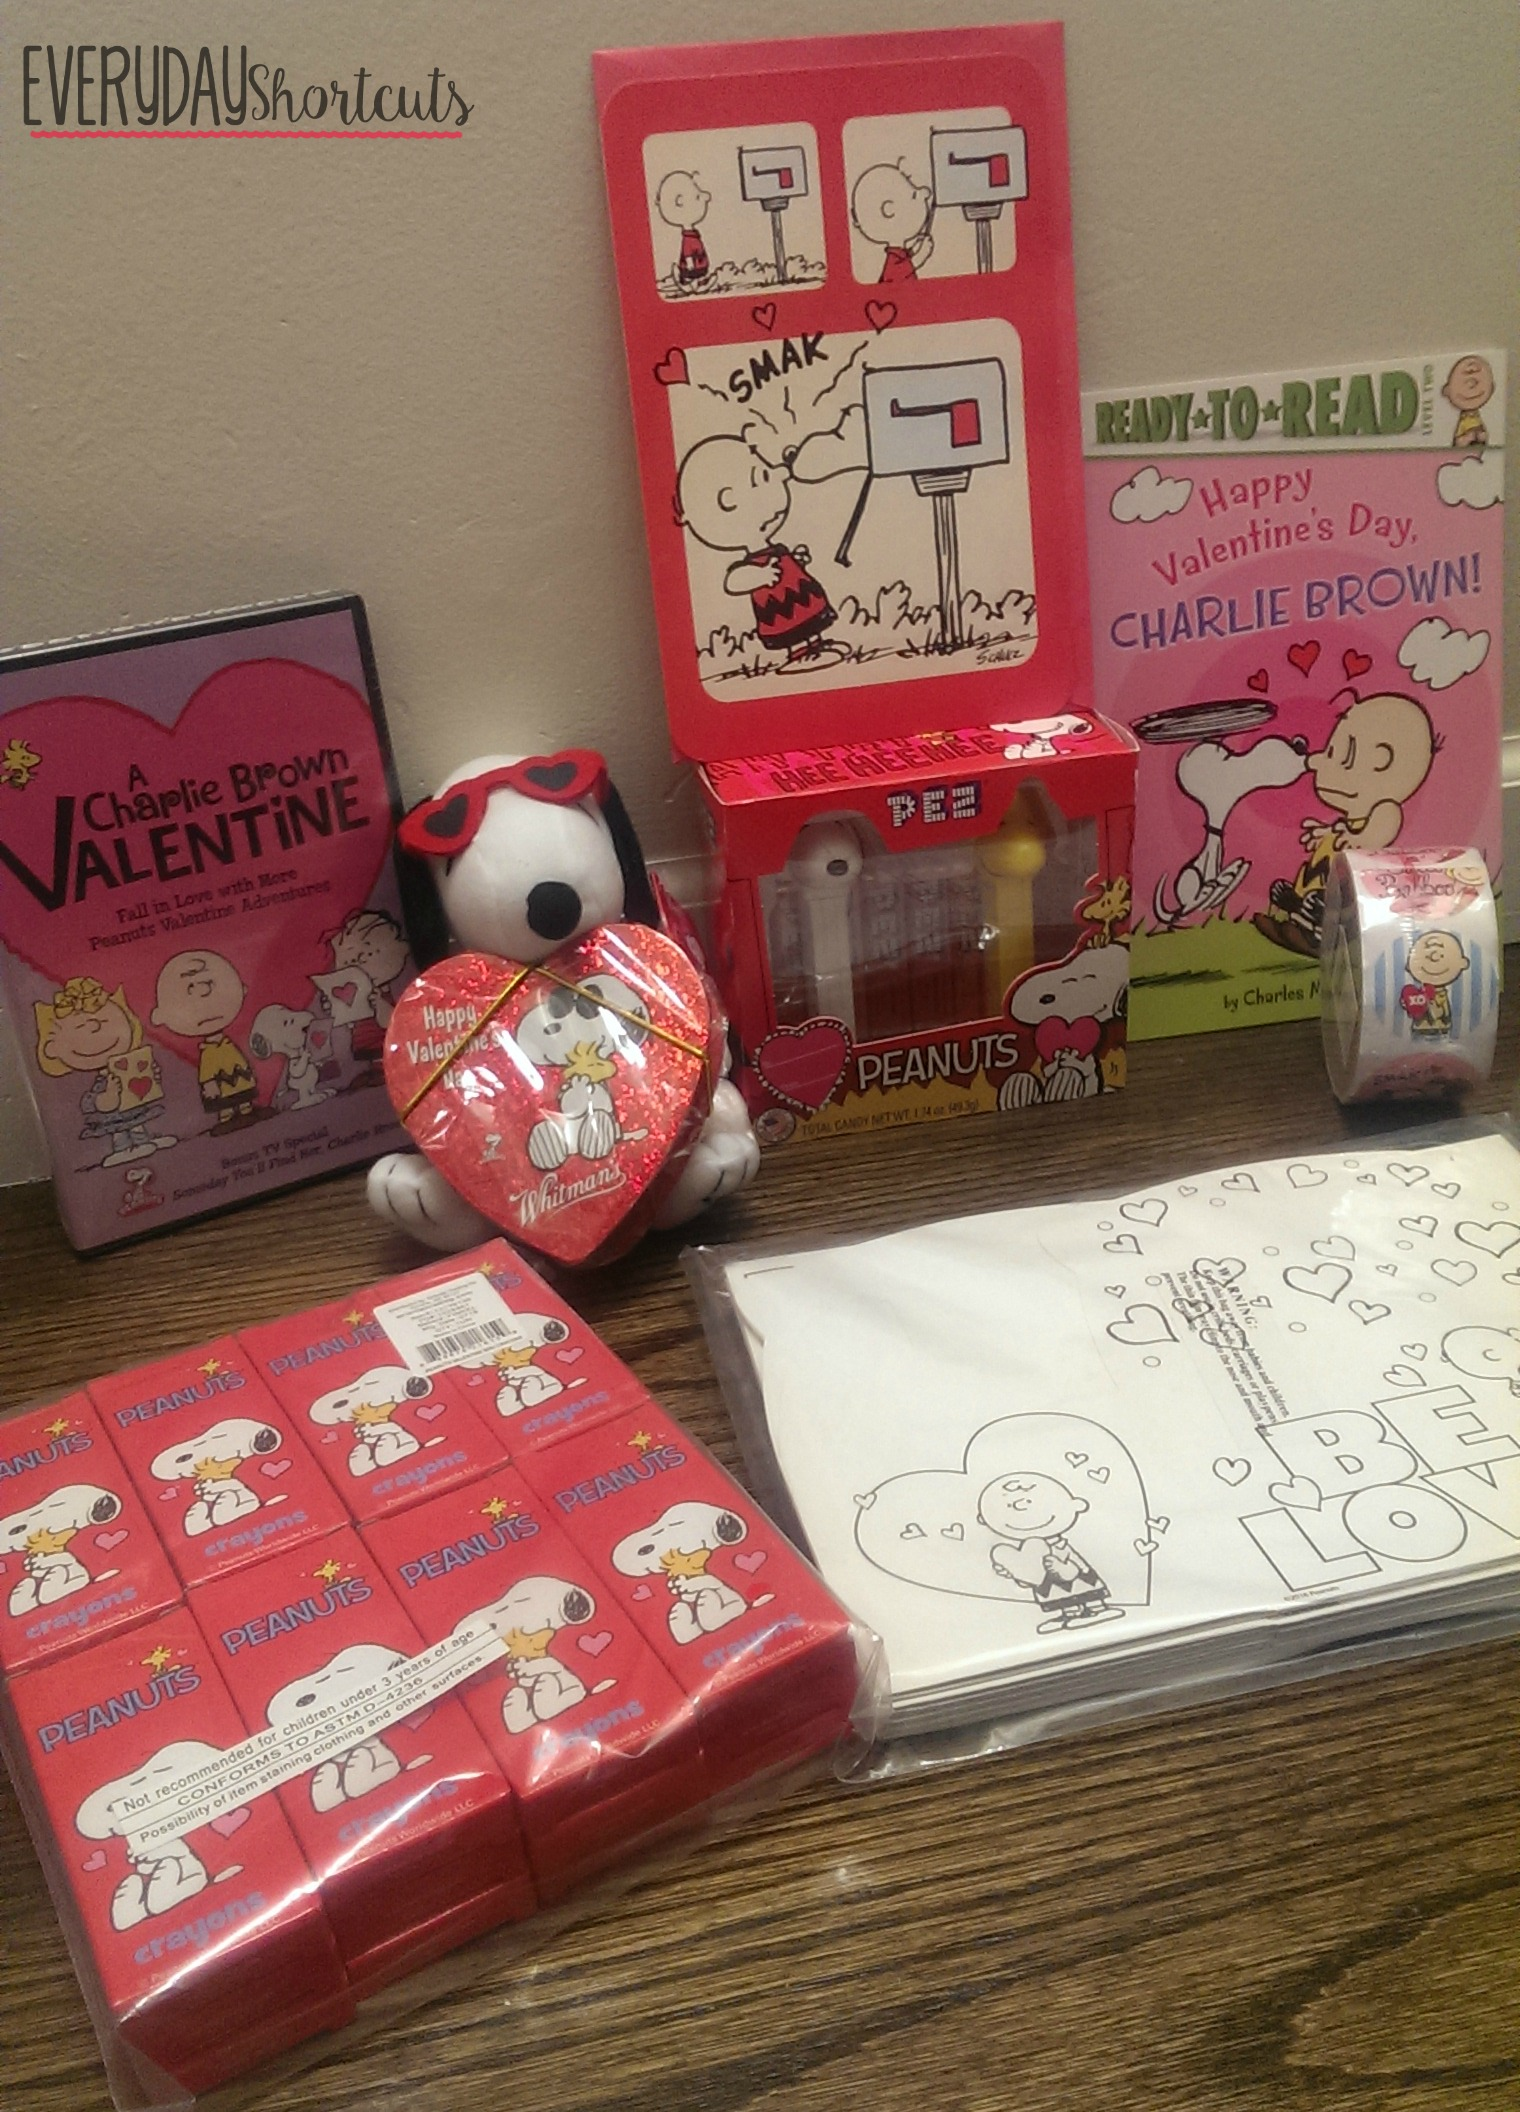 peanuts valentine's day goodies